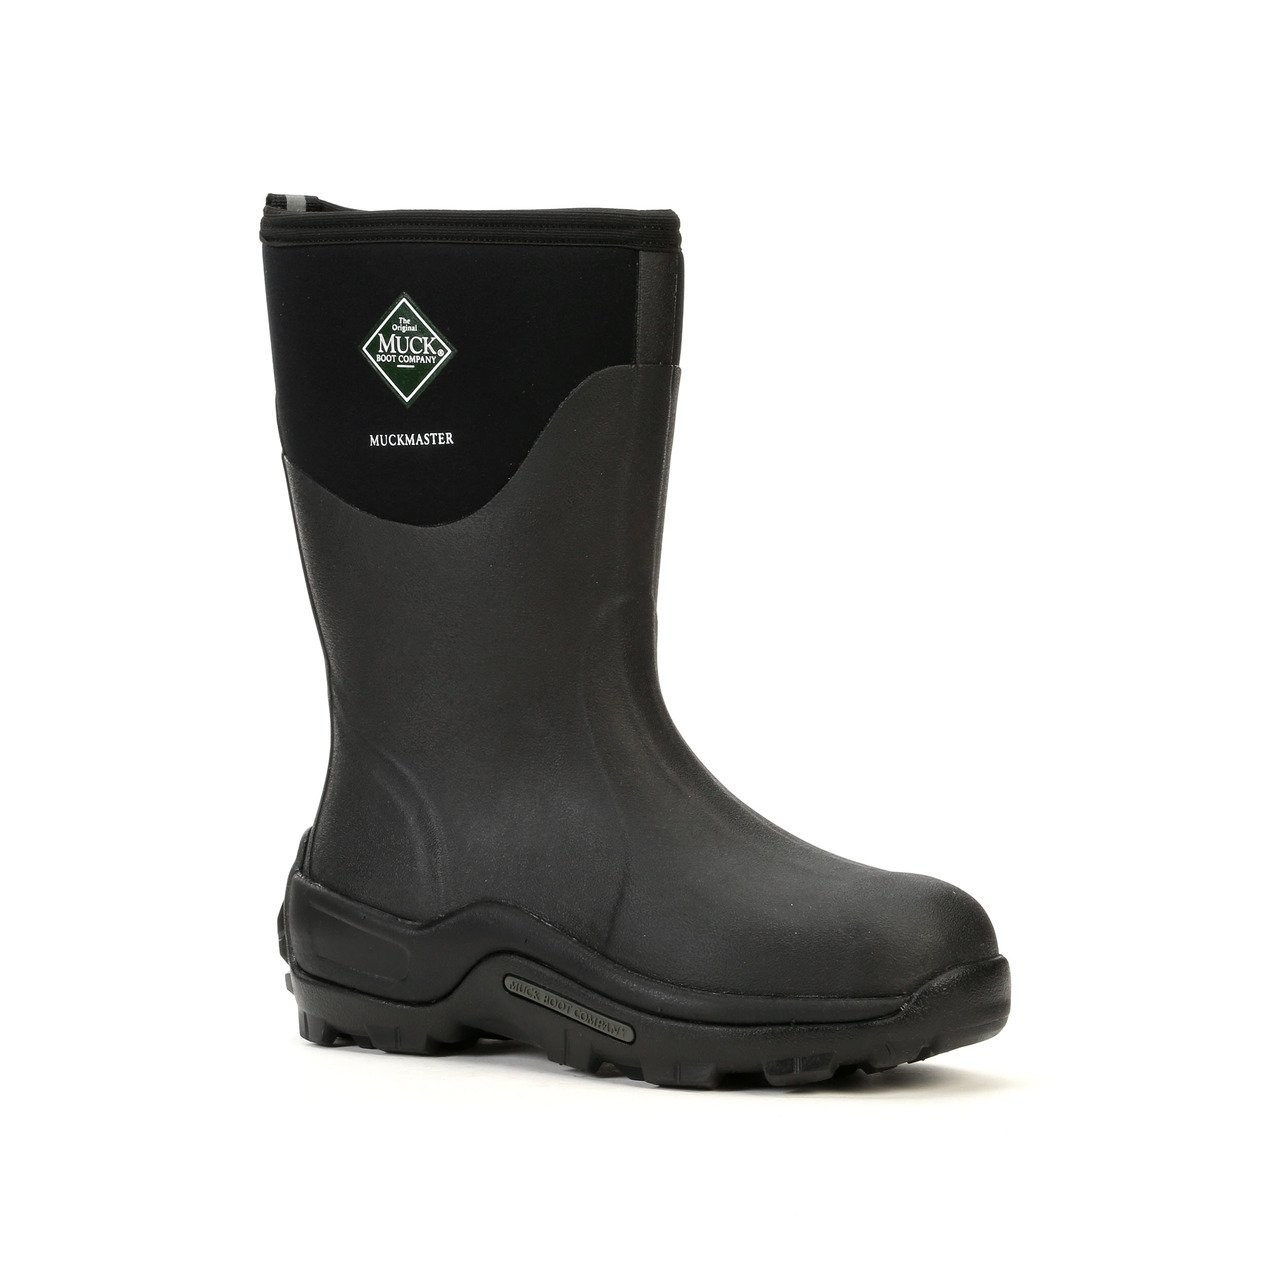 The Original MuckBoots MuckMaster Mid Boot,Black,11 M US Mens/12 M US Womens by Muck Boot (Image #1)